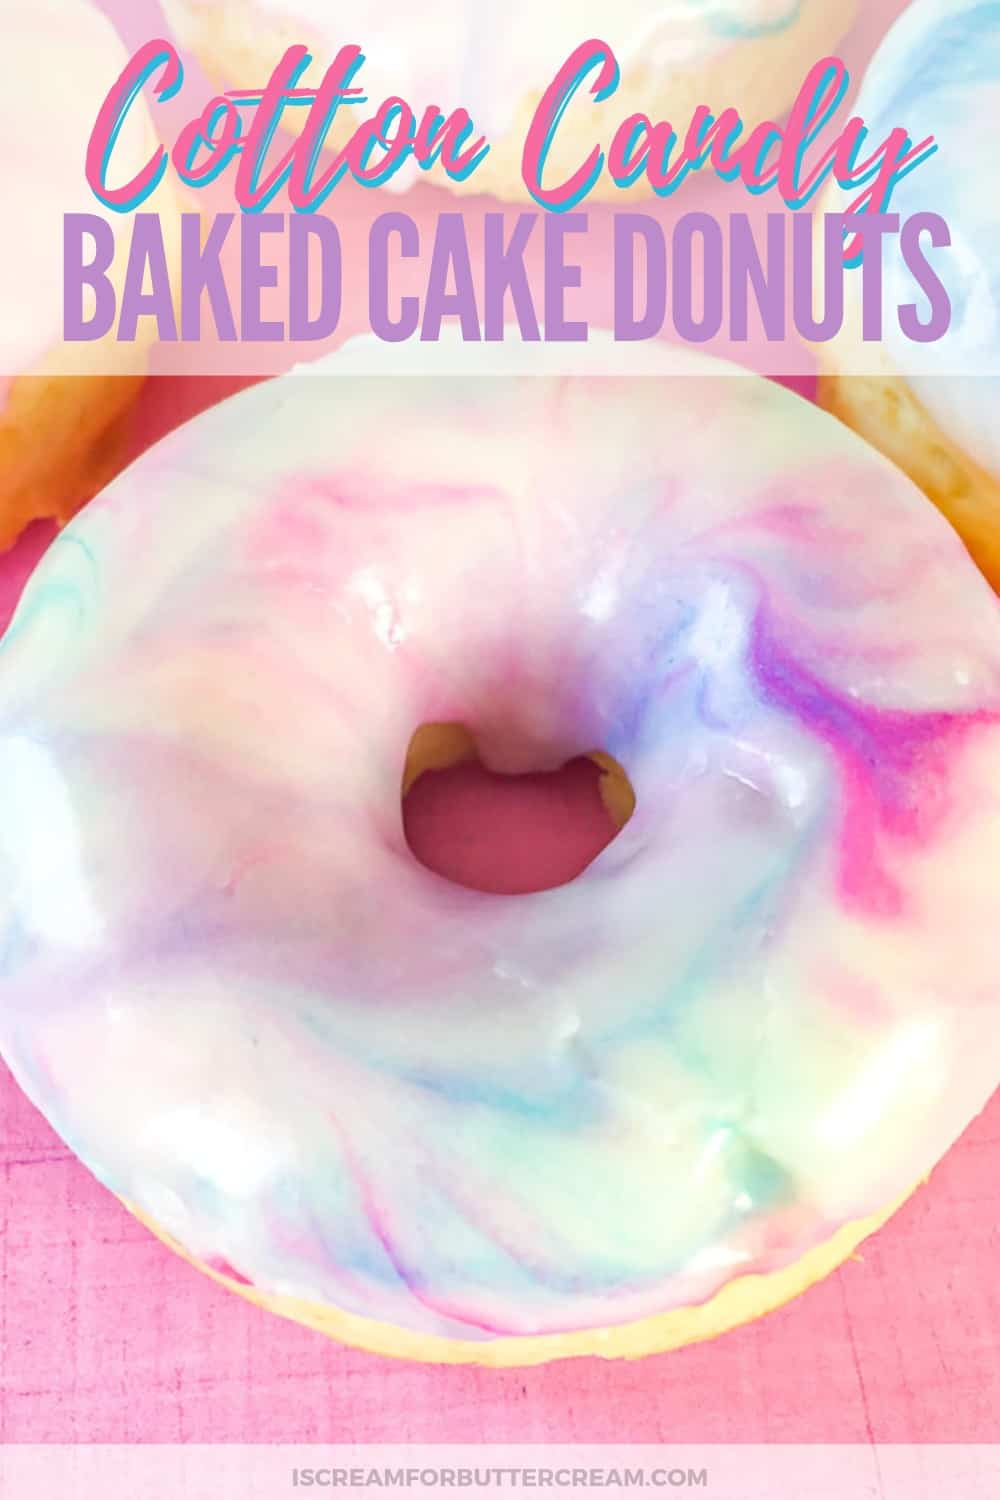 Cotton Candy Baked Cake Donuts New Pin 3